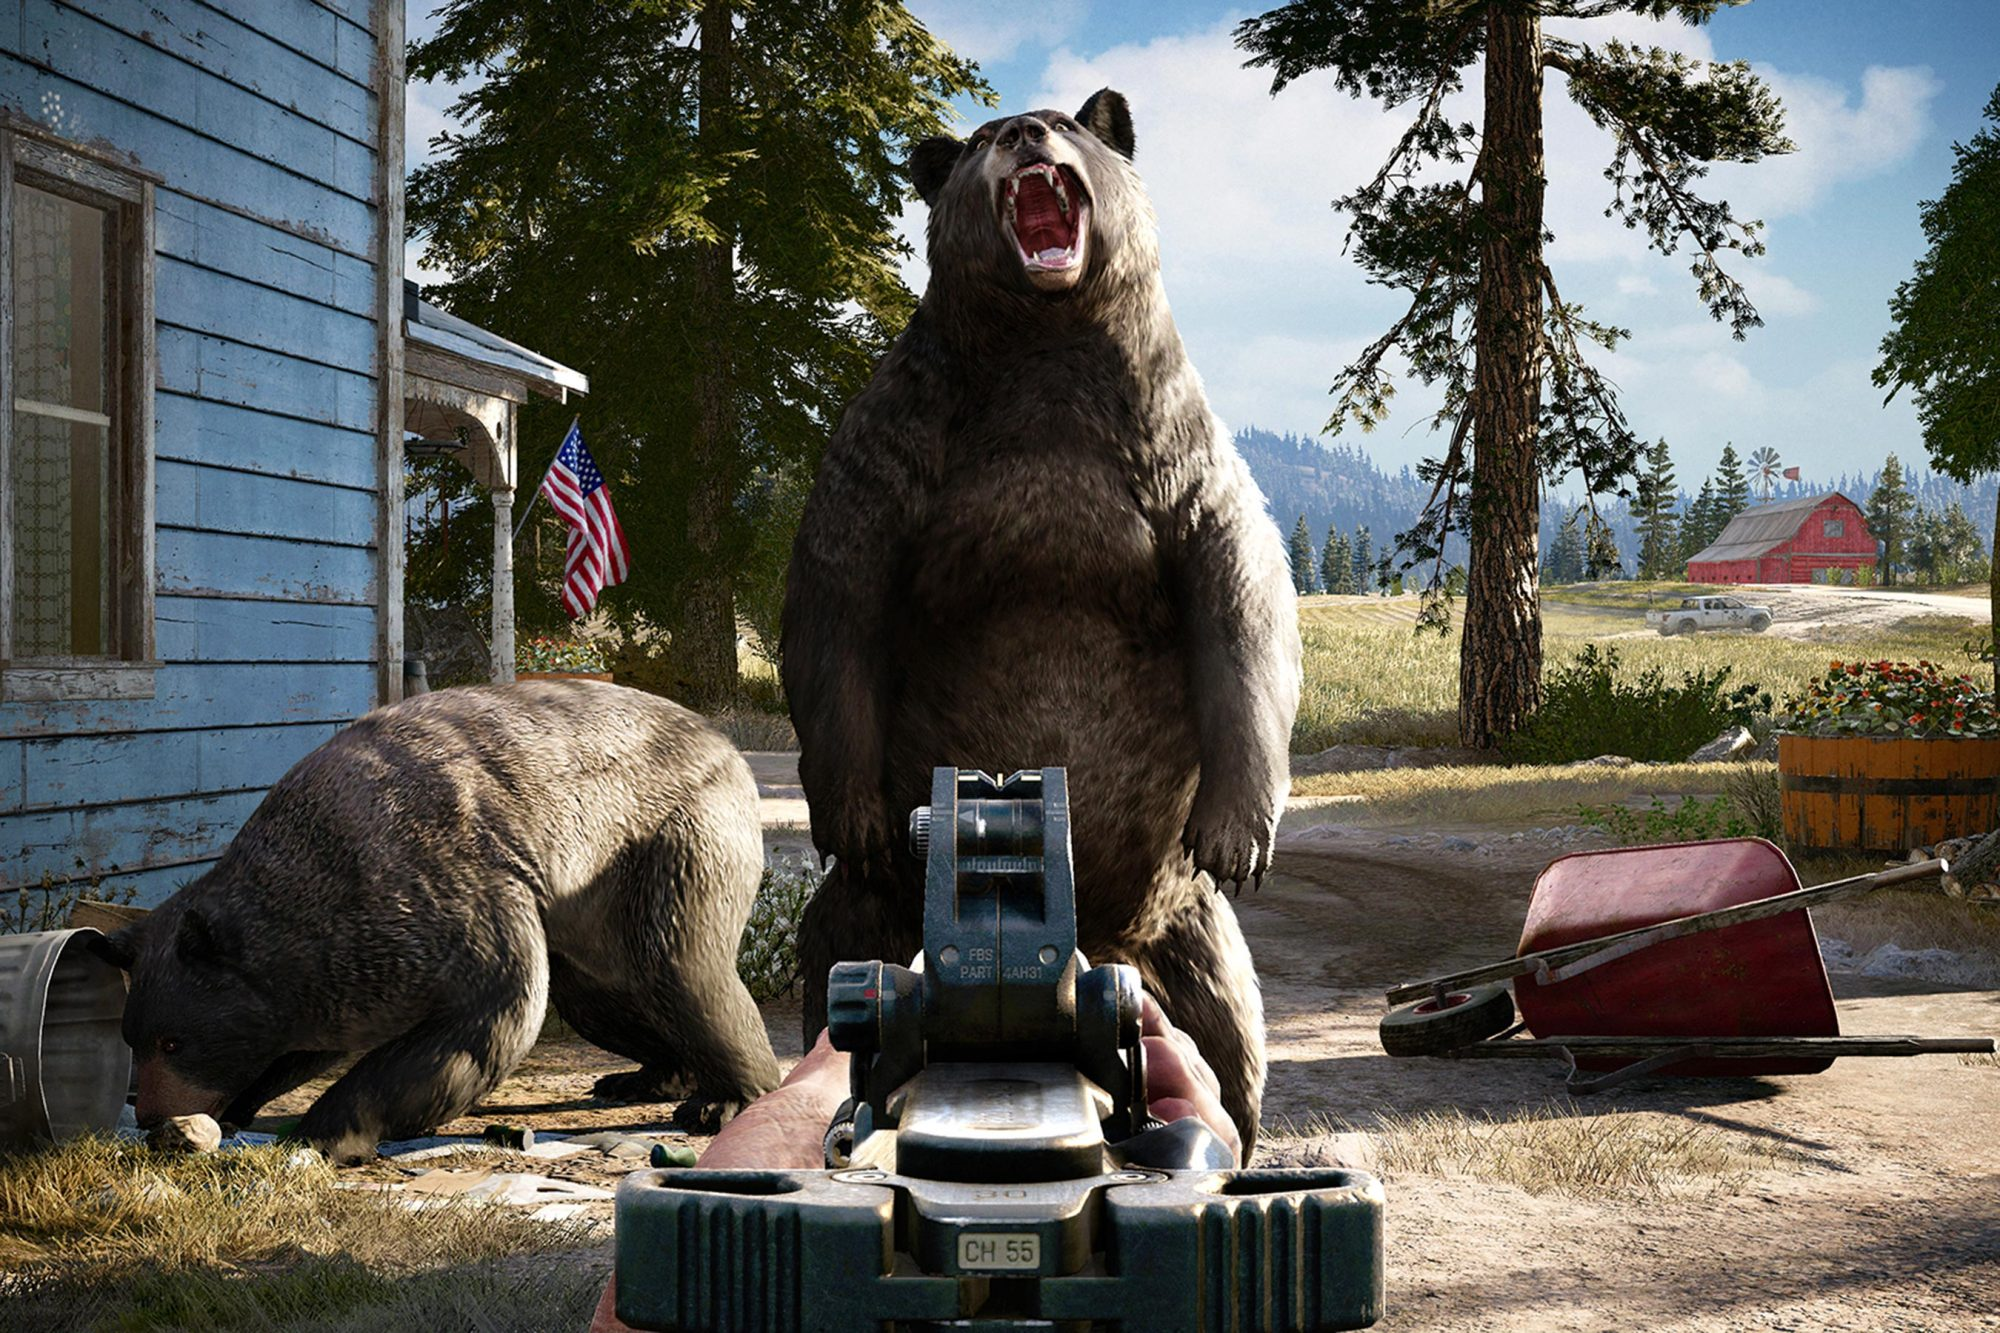 Far Cry 5 video game (2018) CR: Ubisoft